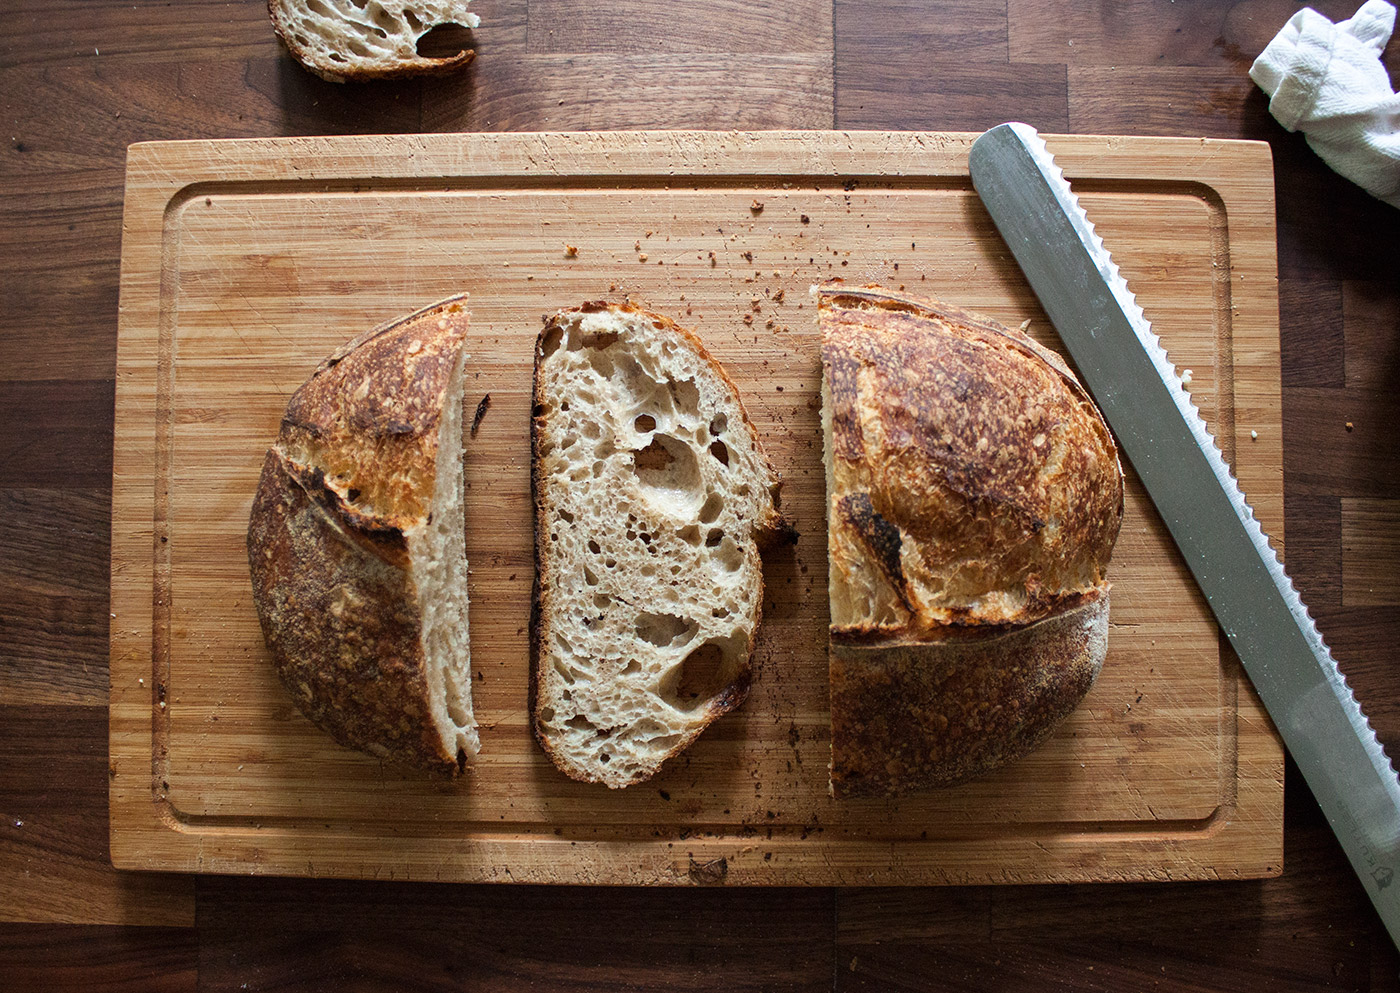 Upstate levain - Our signature bread made with 100% NY state grown and milled flour. A mix of high extraction flour and whole wheat gives this bread great flavor and nutrition without the feeling of a typical whole wheat bread.